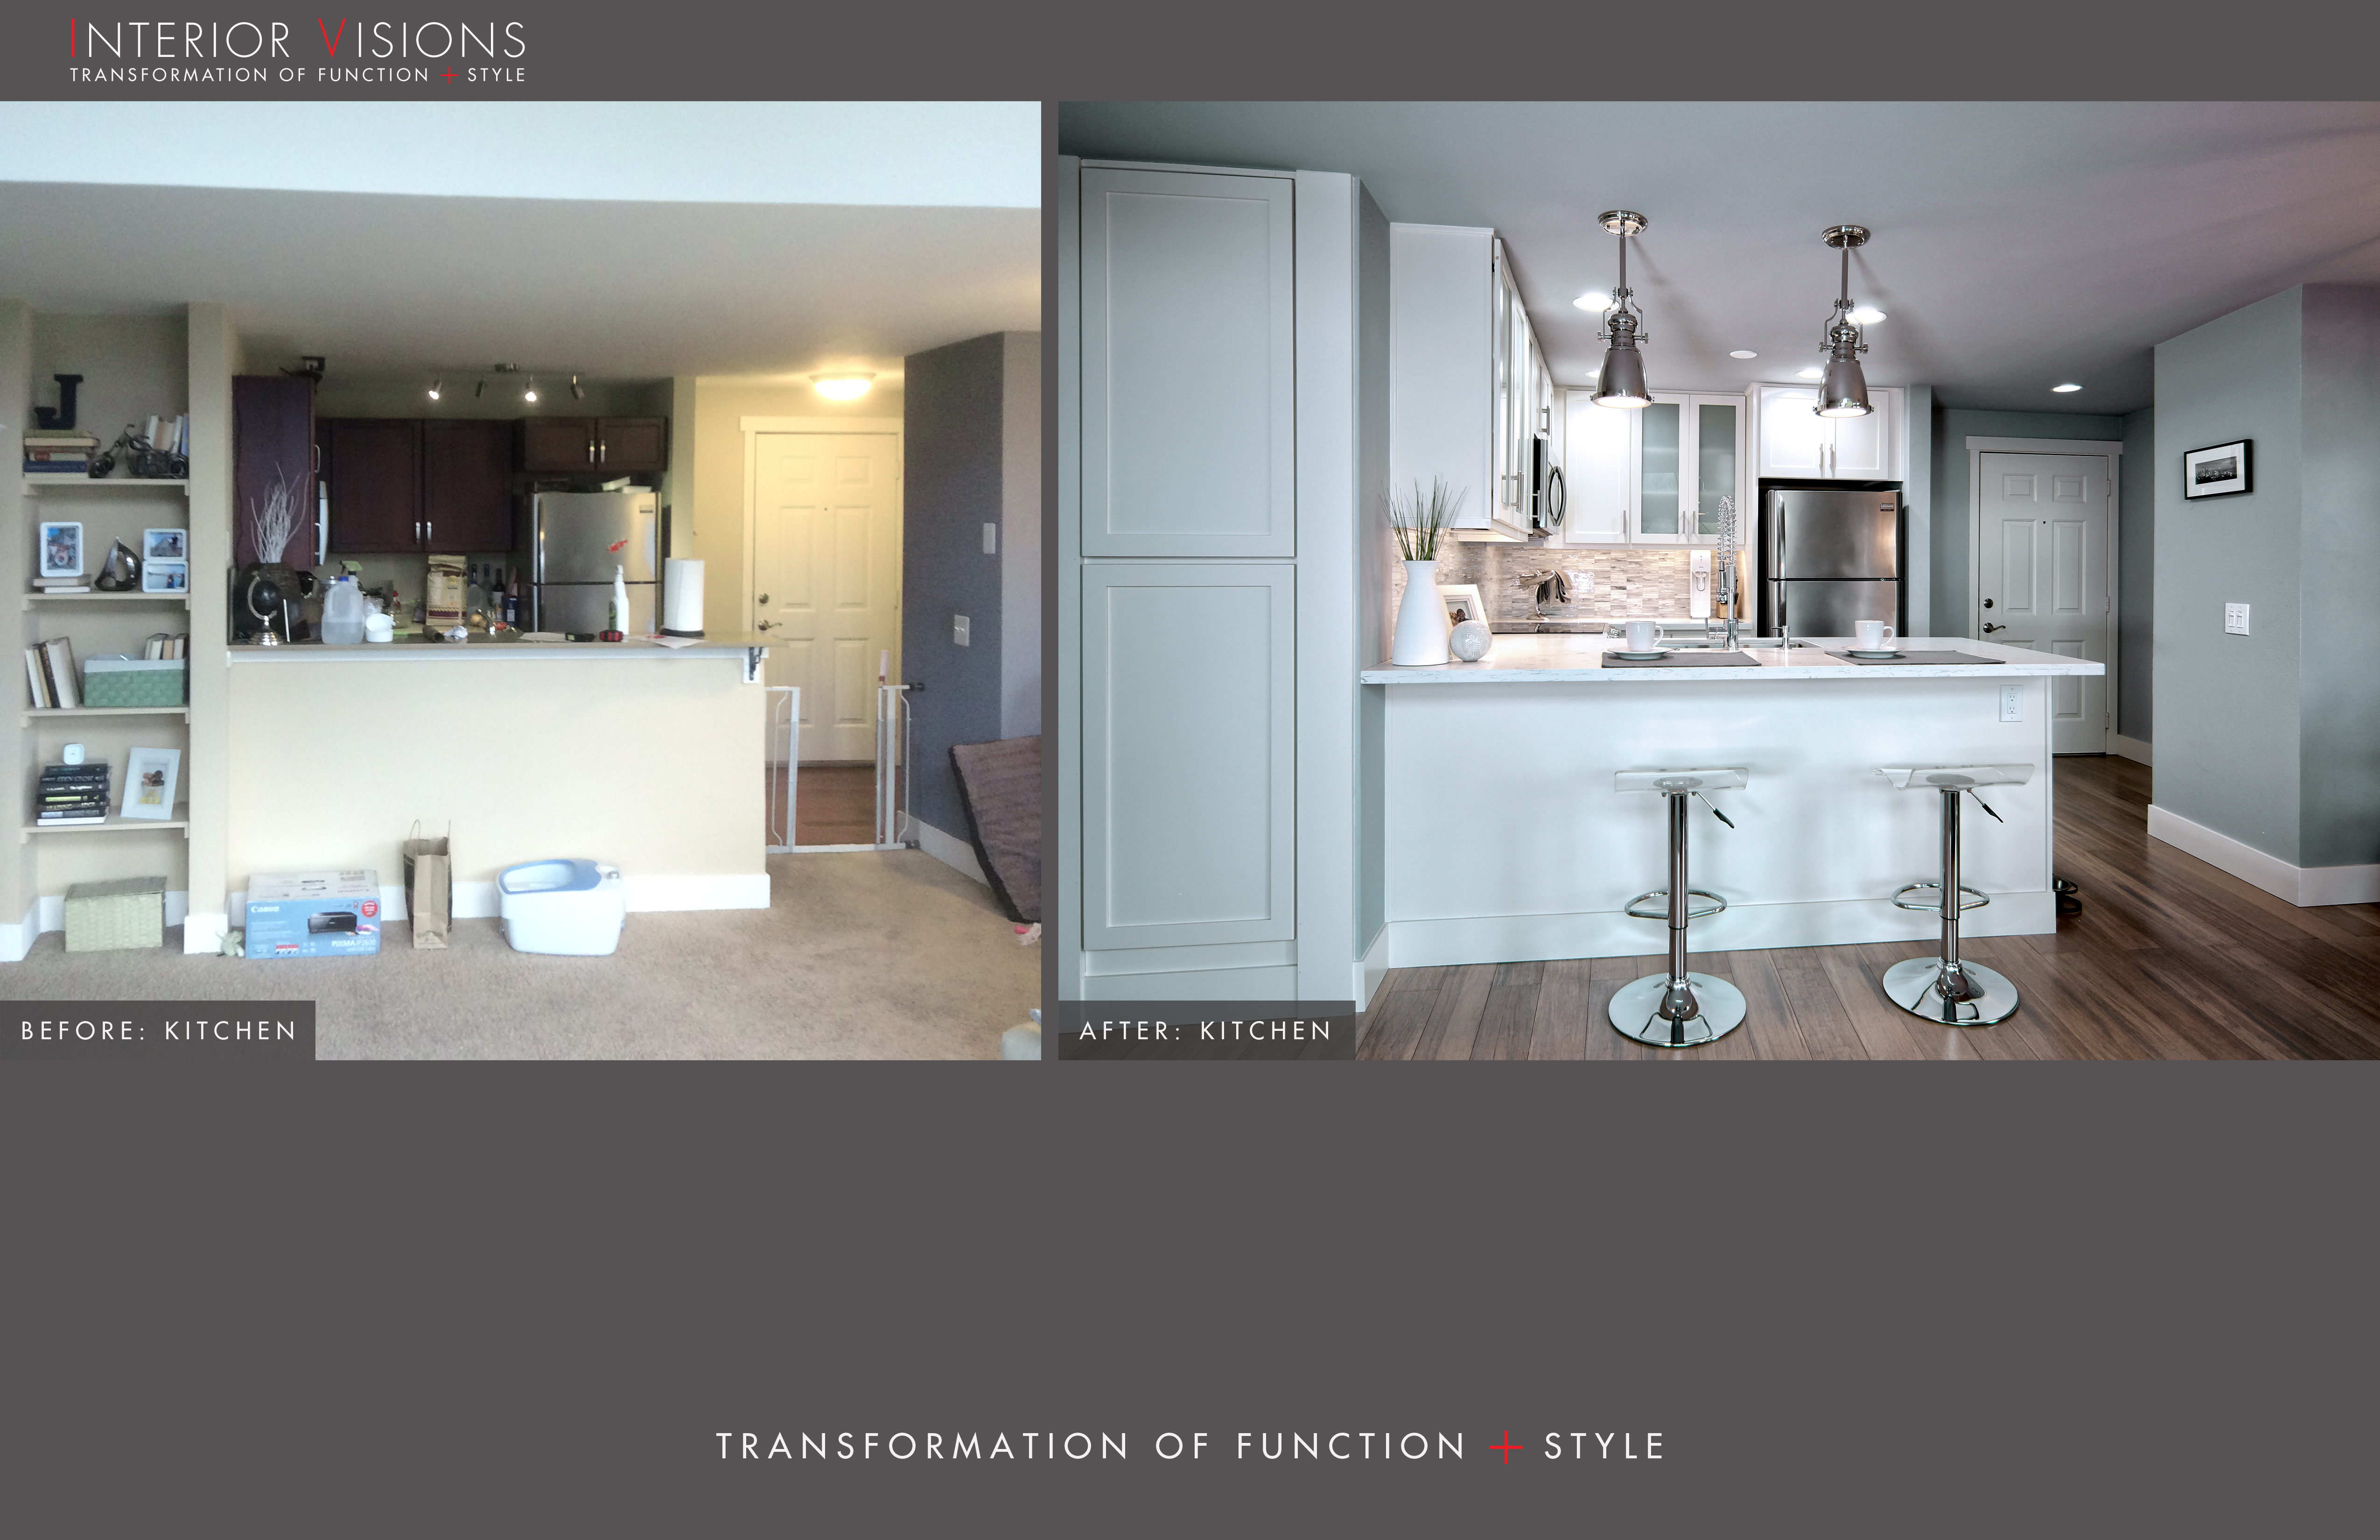 Blog - Interior Visions, LLC